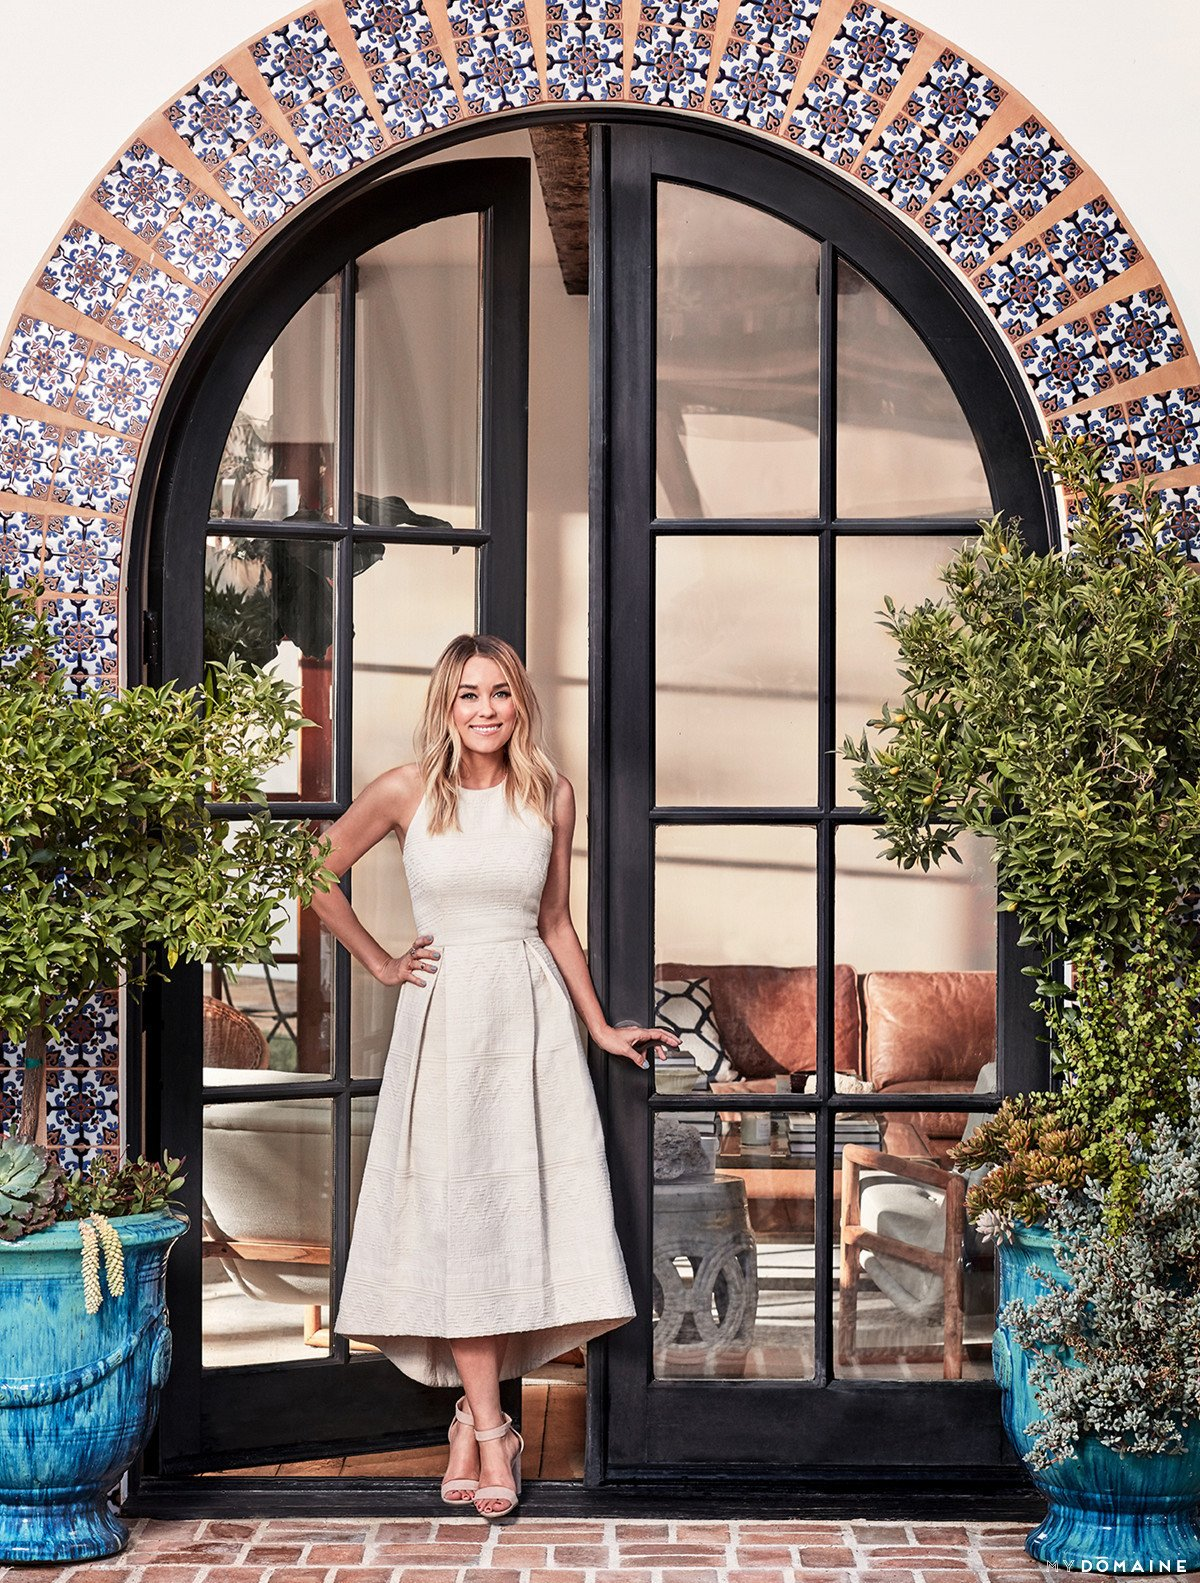 Photo 1 of 24 in Tour Lauren Conrad's Elegant, Light-Filled Home in the Pacific Palisades